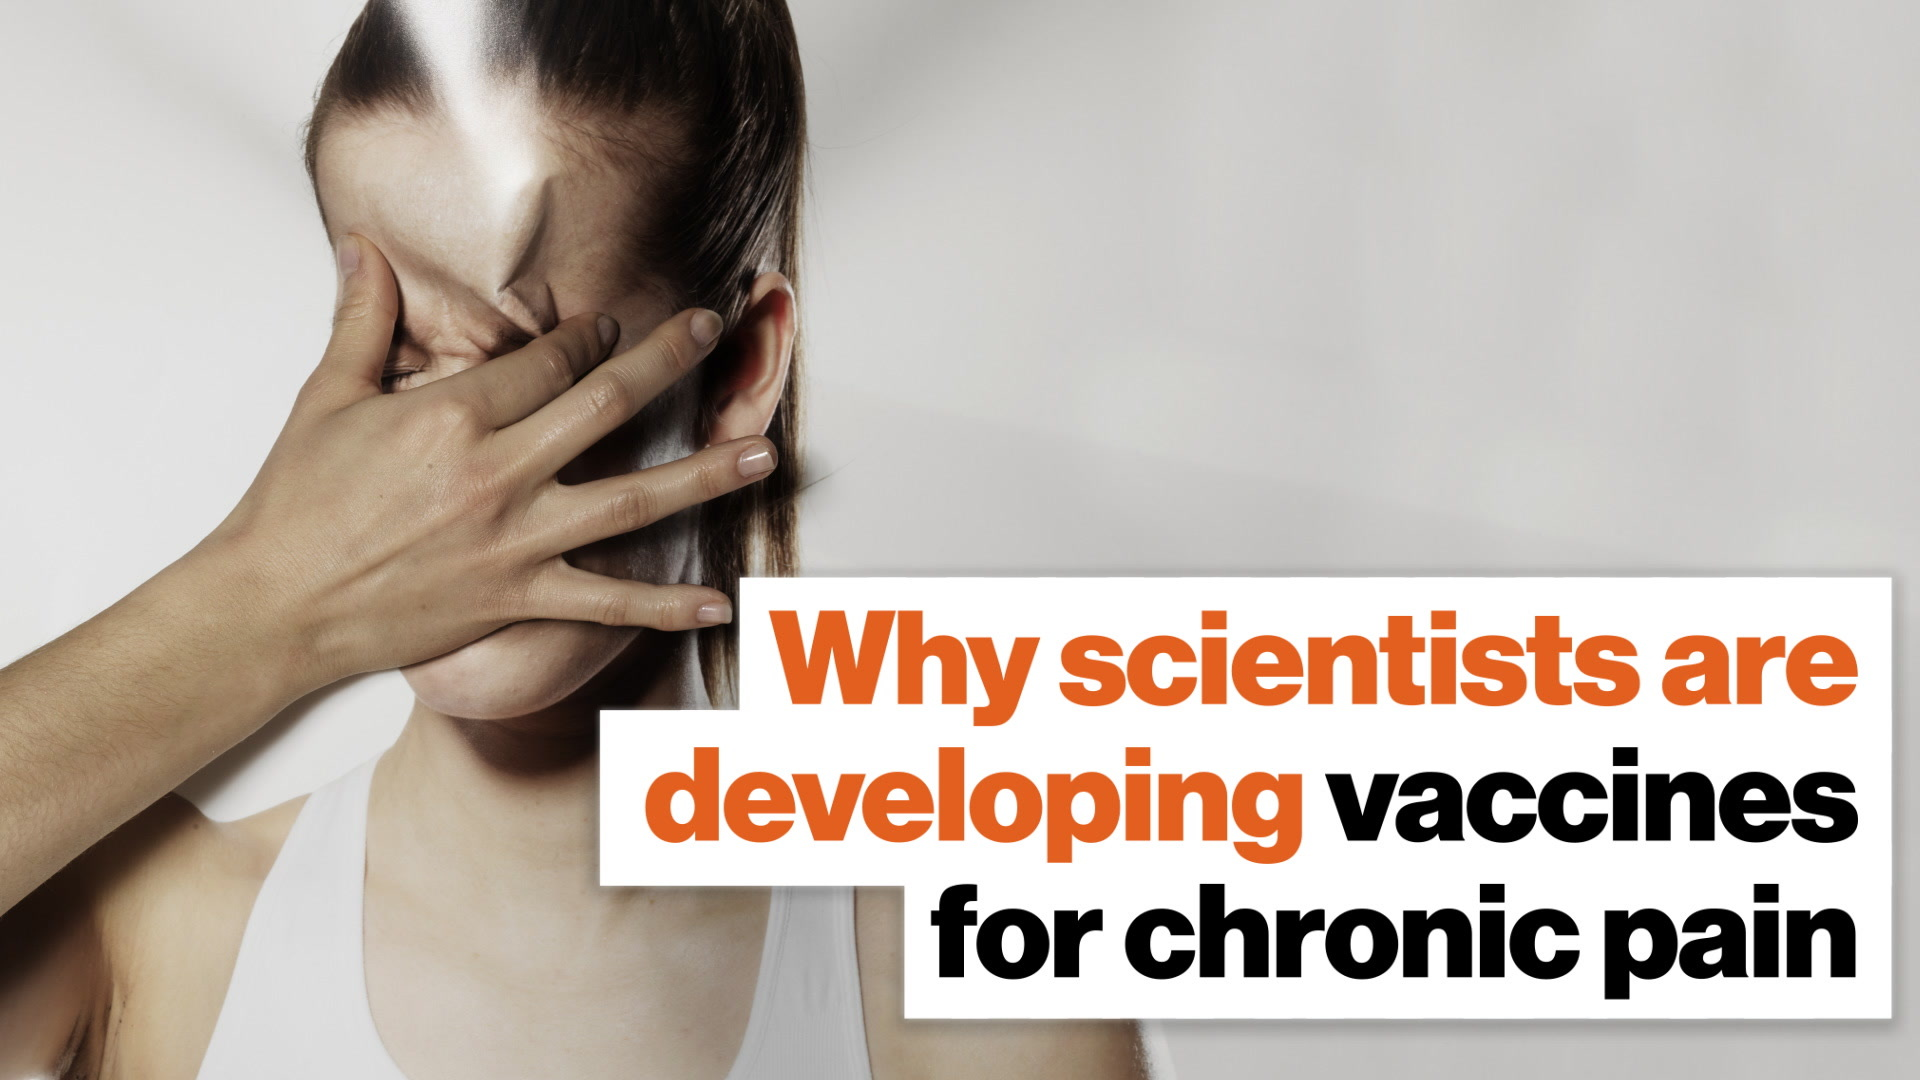 What if you were immune to chronic pain? Vaccines could make it happen.